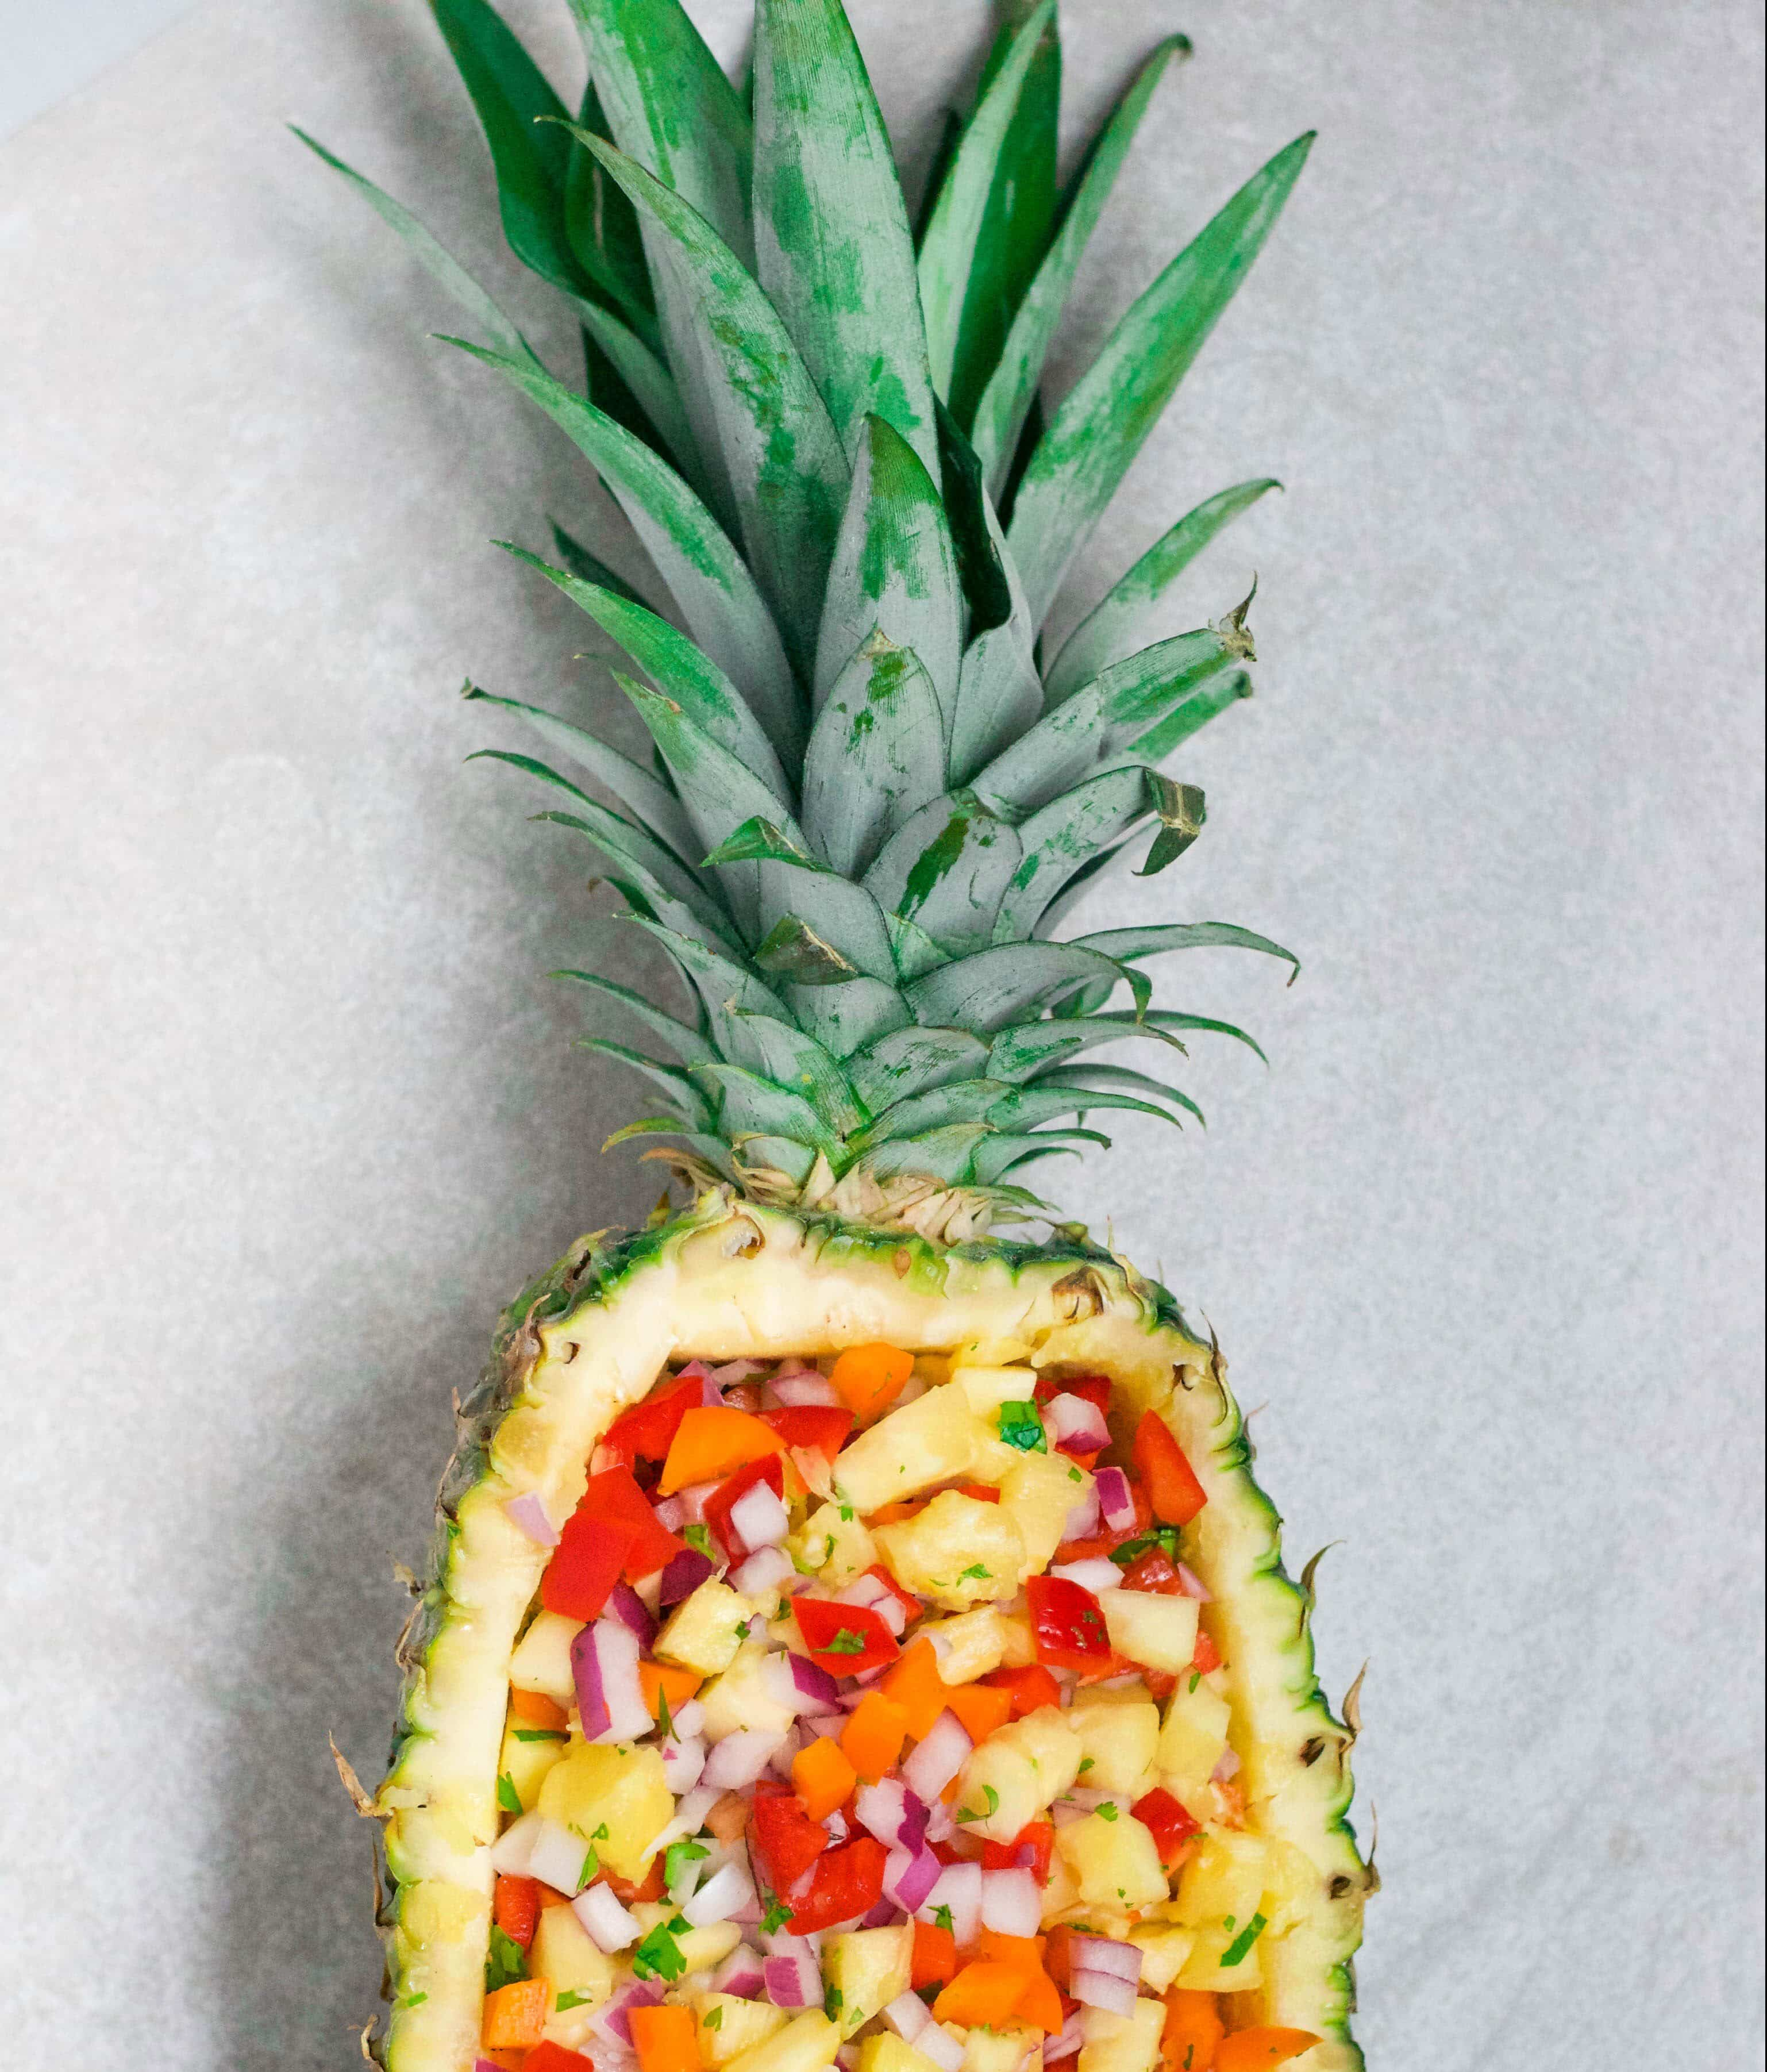 This pineapple salsa served in a pineapple boat is a serious show stopper! Not to mention delicious, too! It's naturally gluten-free, dairy-free, and vegan - making it the perfect party appetizer for all of your friends! Get the recipe at A Dash of Megnut www.adashofmegnut.com.